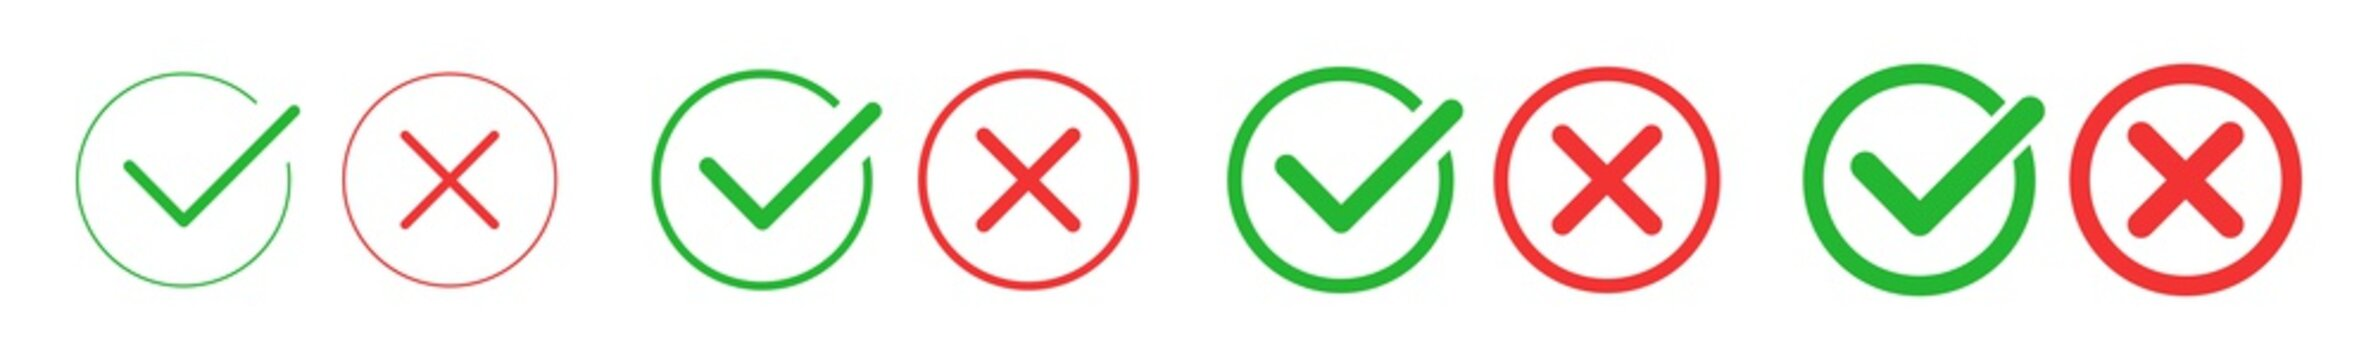 Check Mark Cross Circle Icon Green Red | Checkmark Checklist Illustration | Tick X Symbol | Voting Logo | Positive Negative Sign | Isolated | Variations